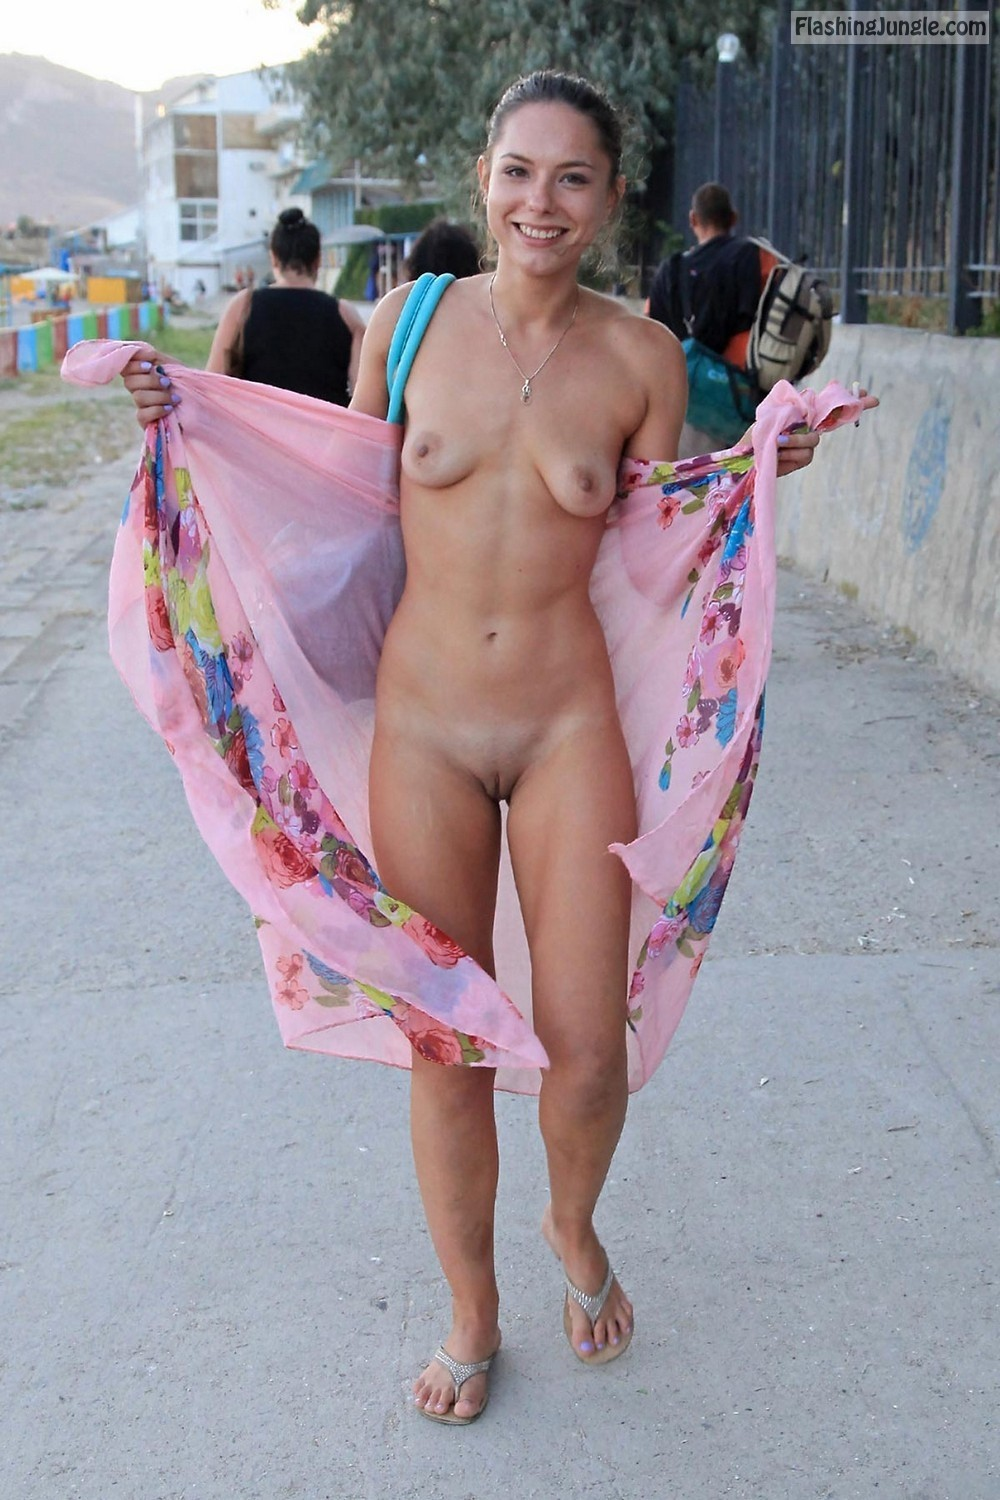 Cutie flashes her tight body on the way to the beach pussy flash public flashing no panties boobs flash bitch